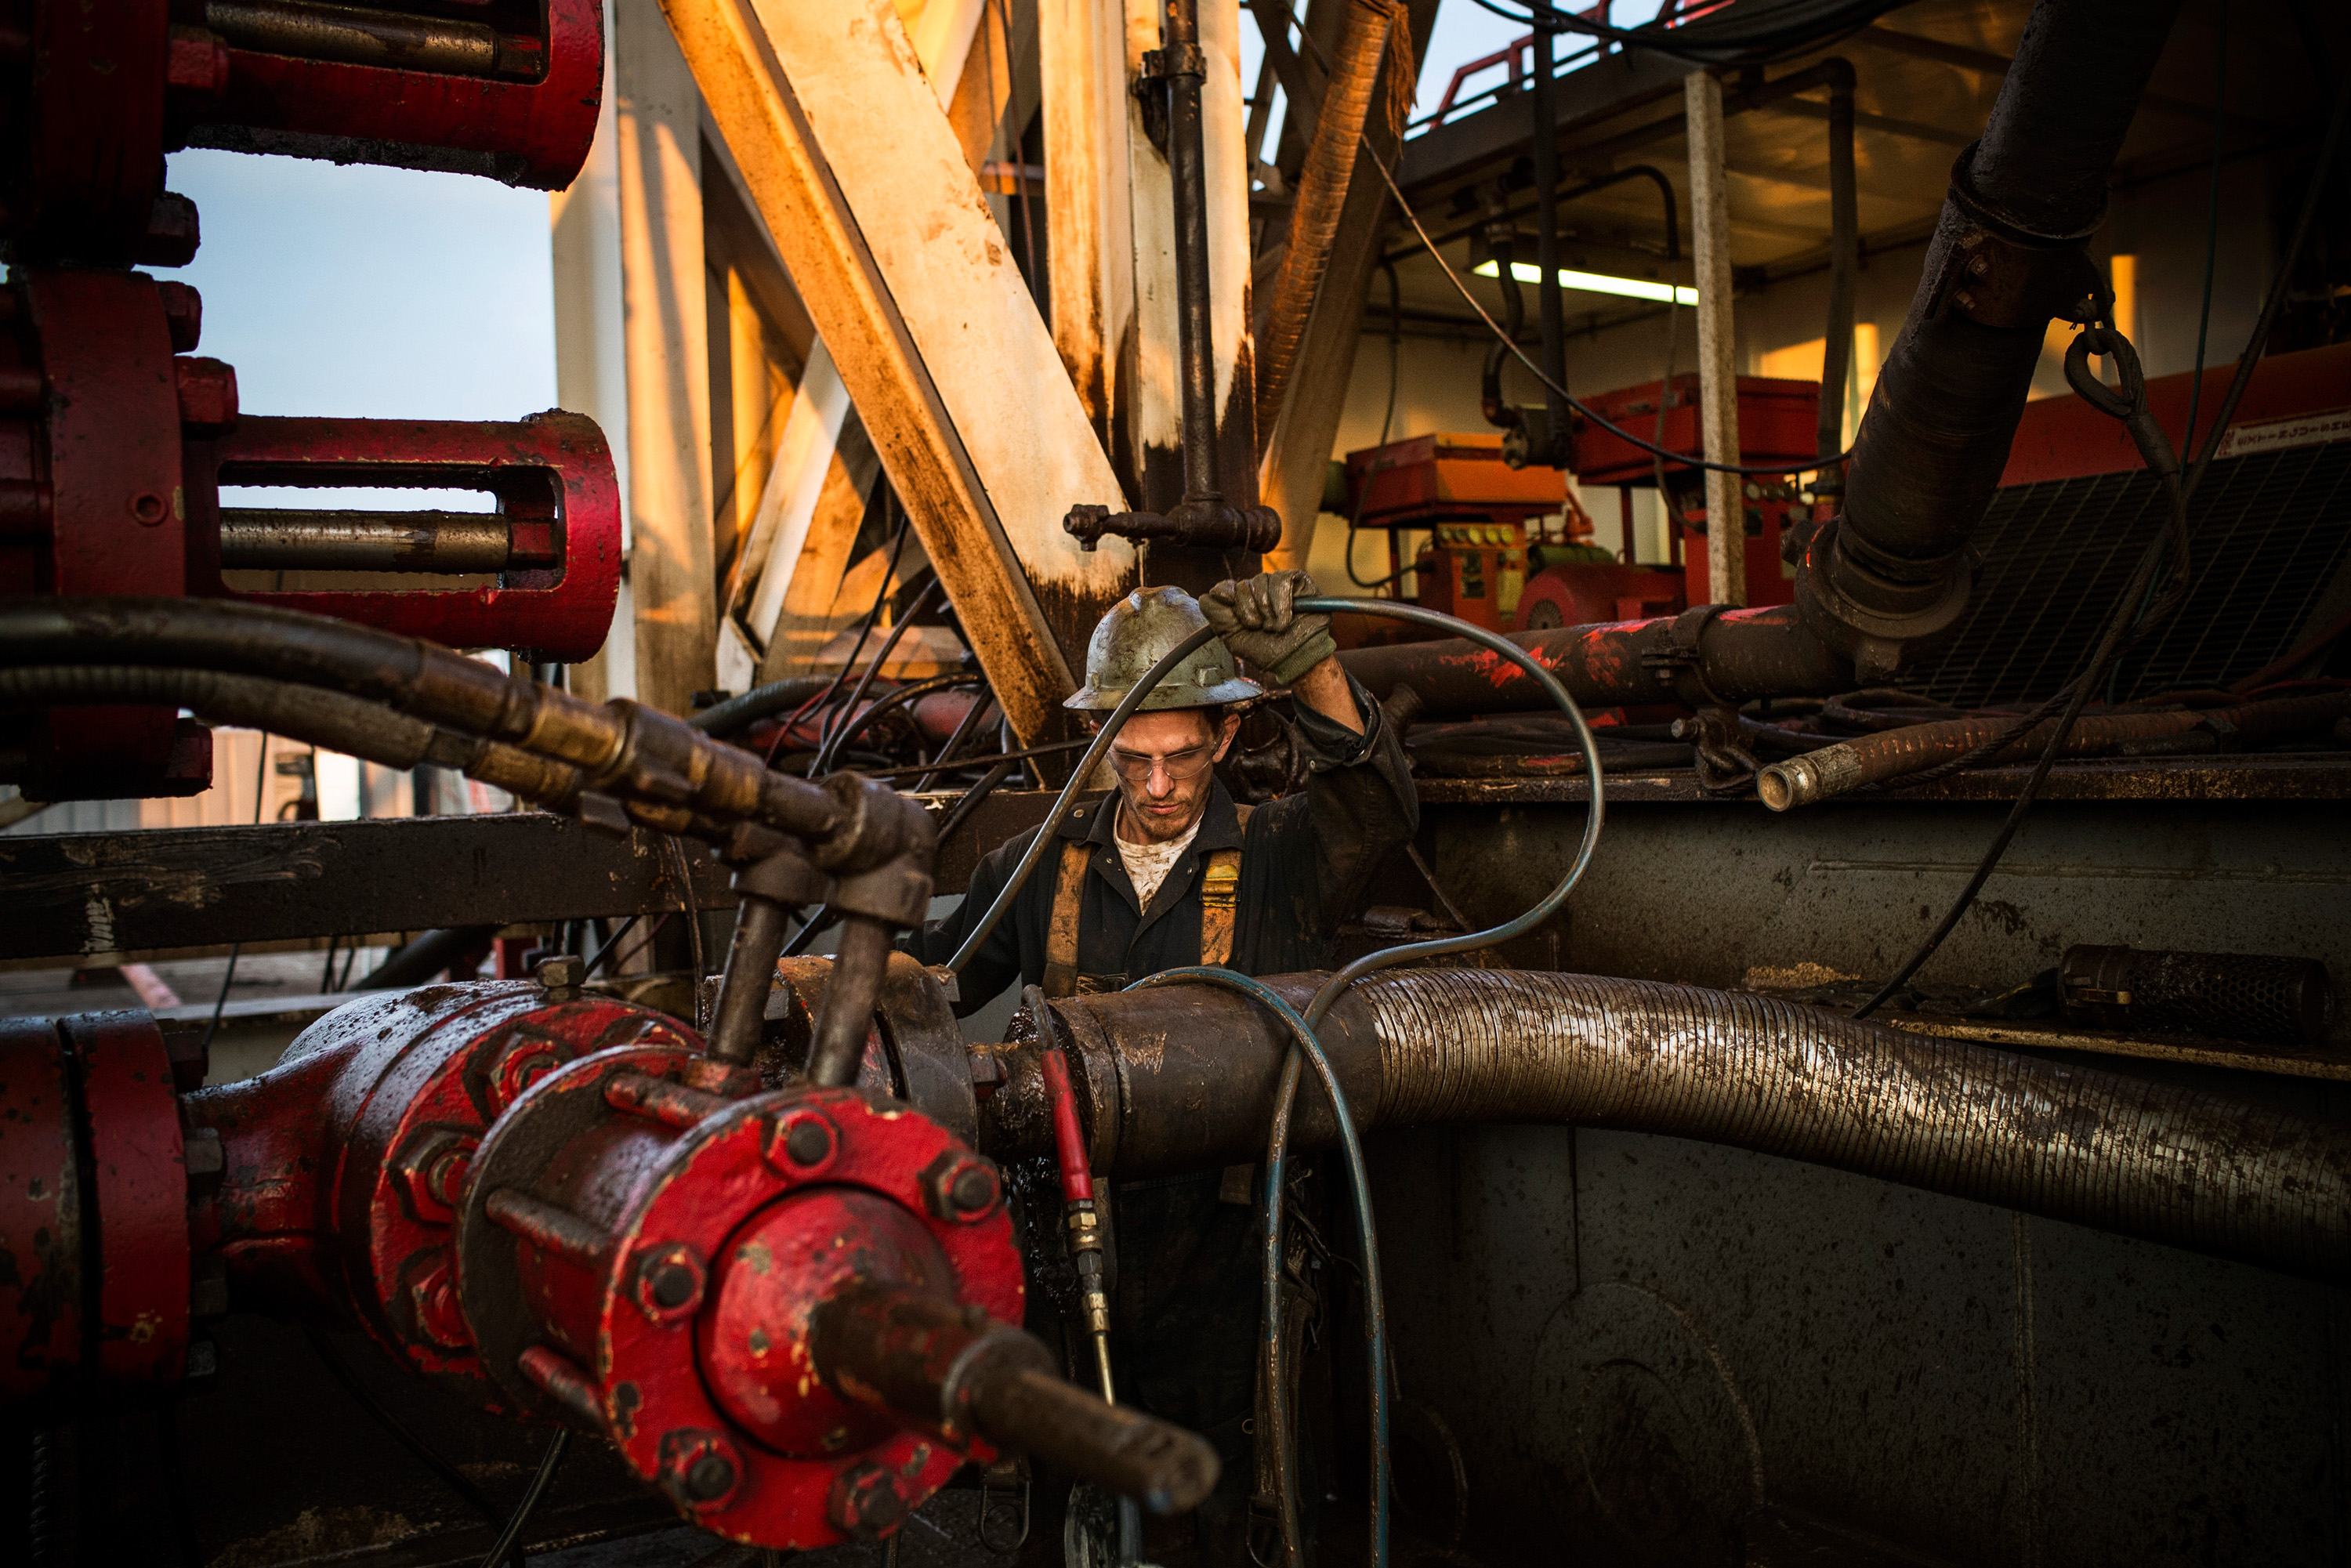 Ray Gerish, a floor hand for Raven Drilling, works on an oil rig drilling into the Bakken shale formation on July 28, 2013.